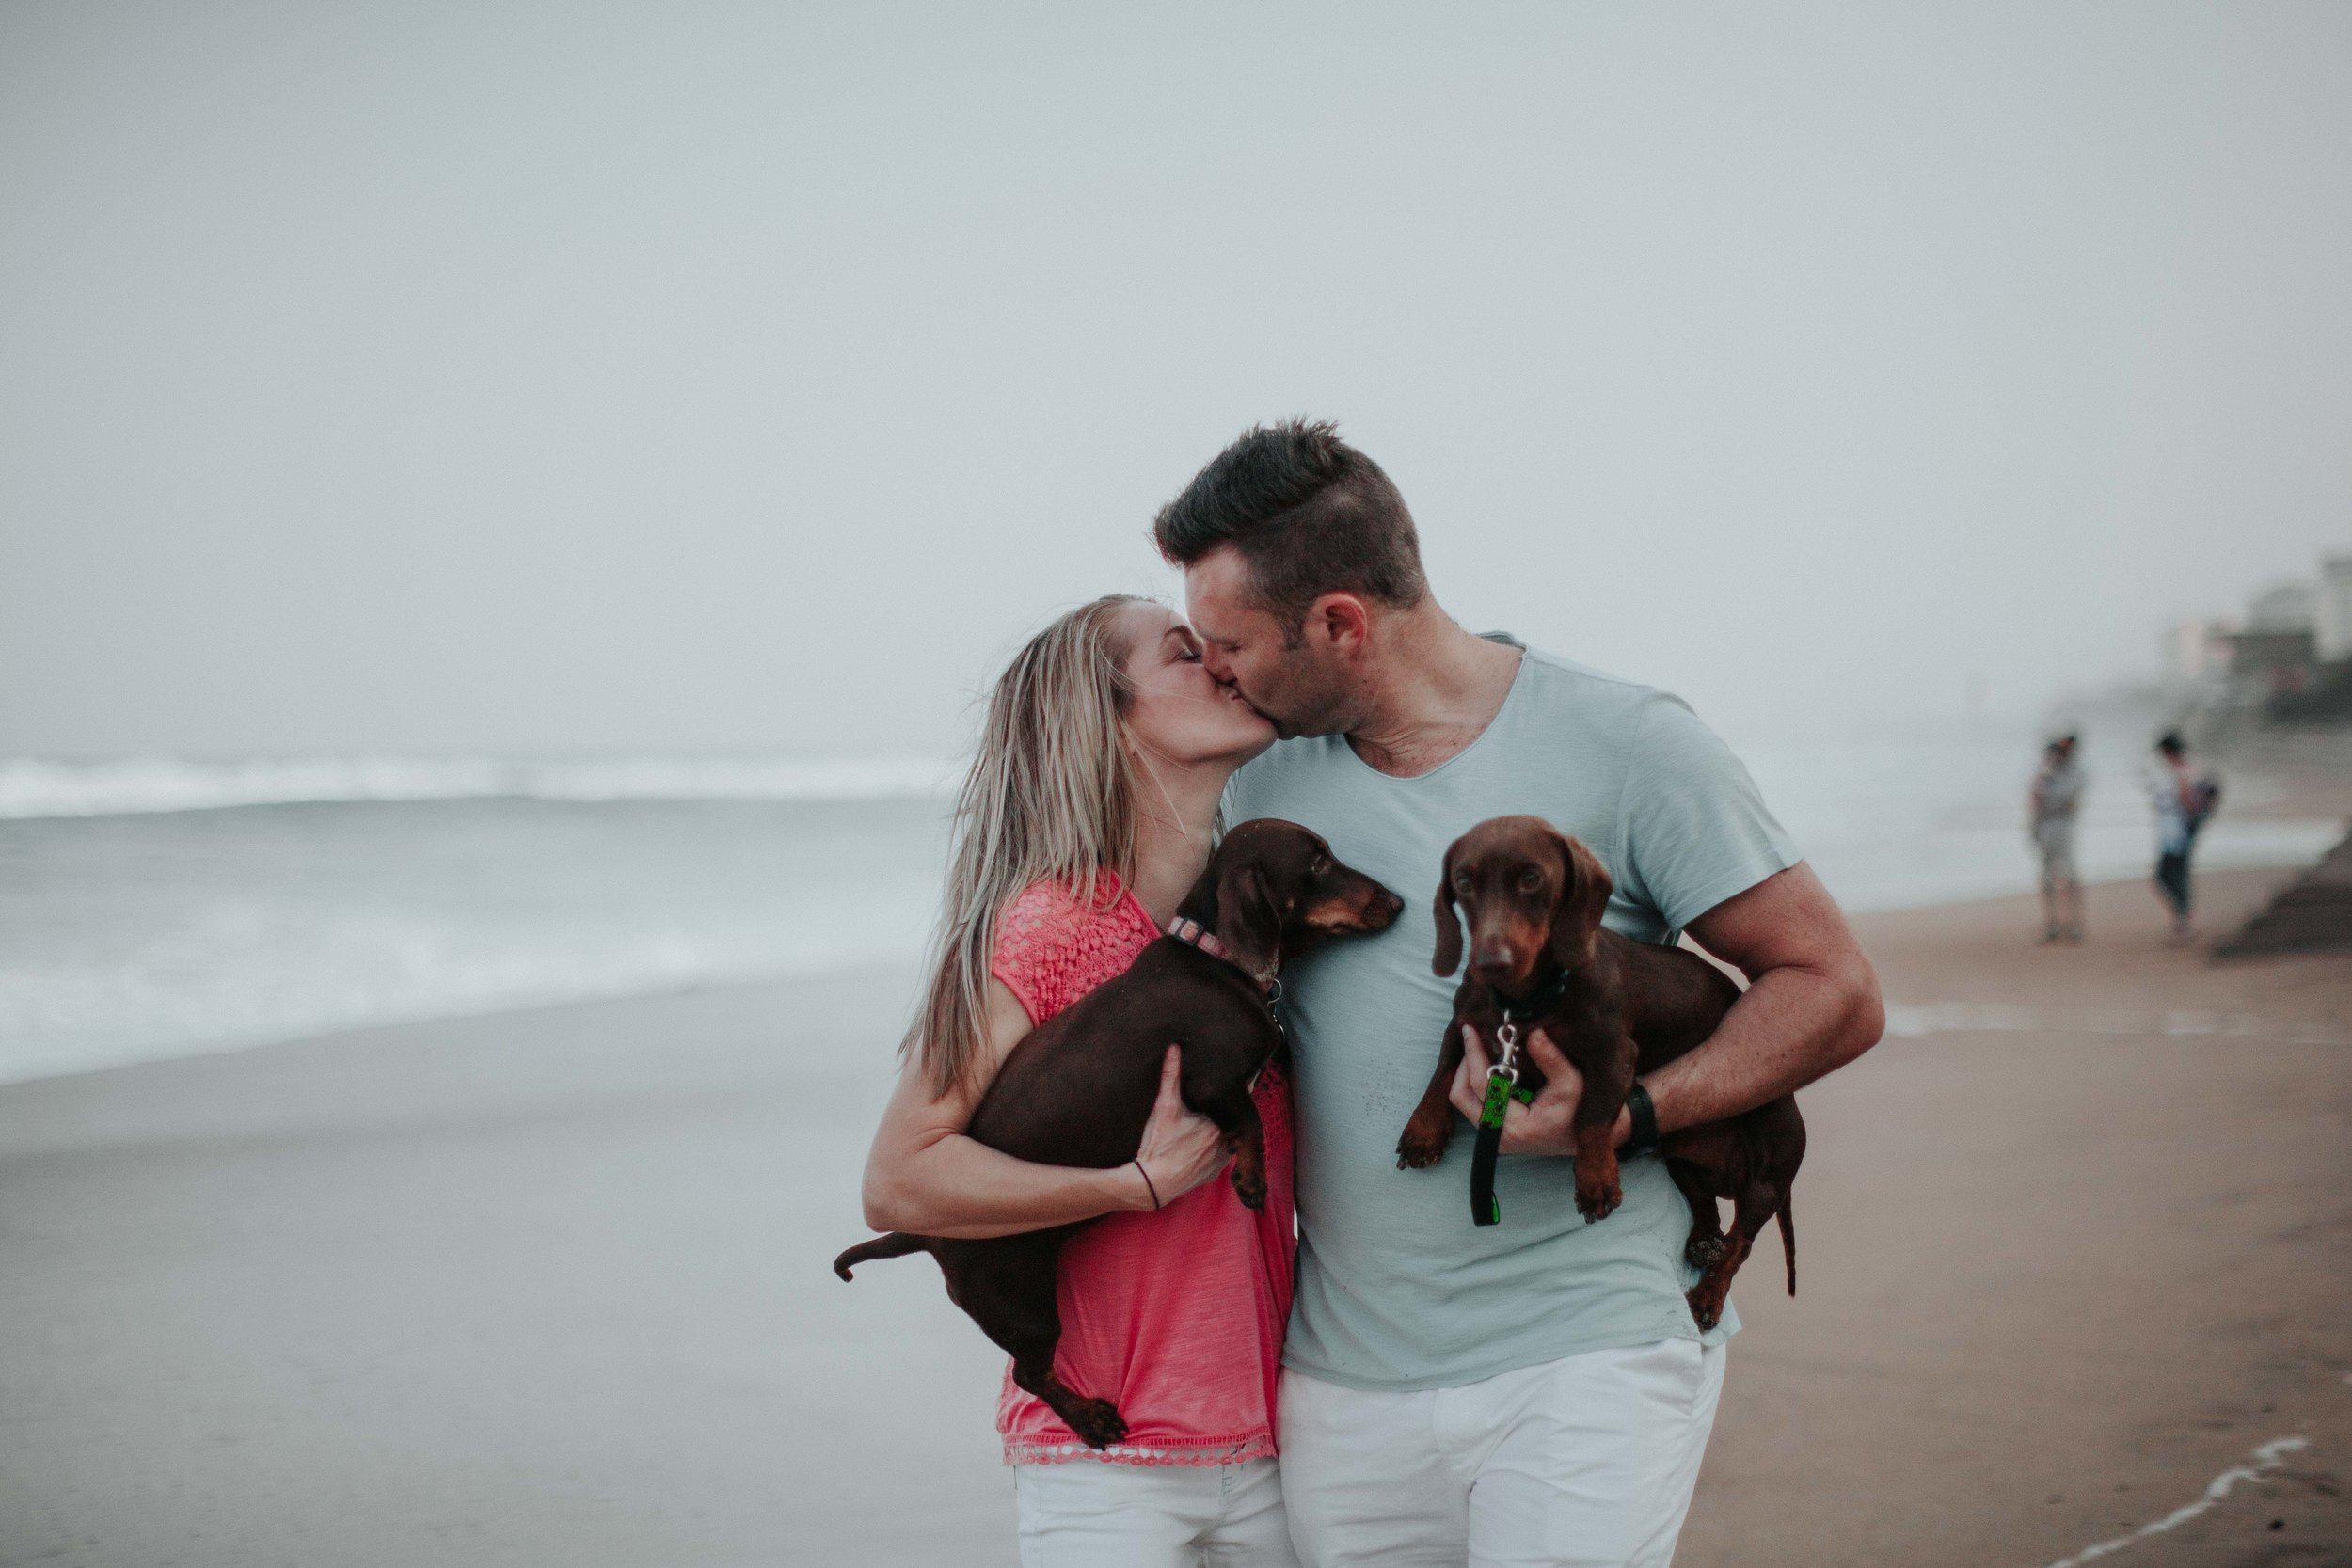 Kristi Smith Photography - Engagement Shoot - Steve & Tarryn 3.jpg